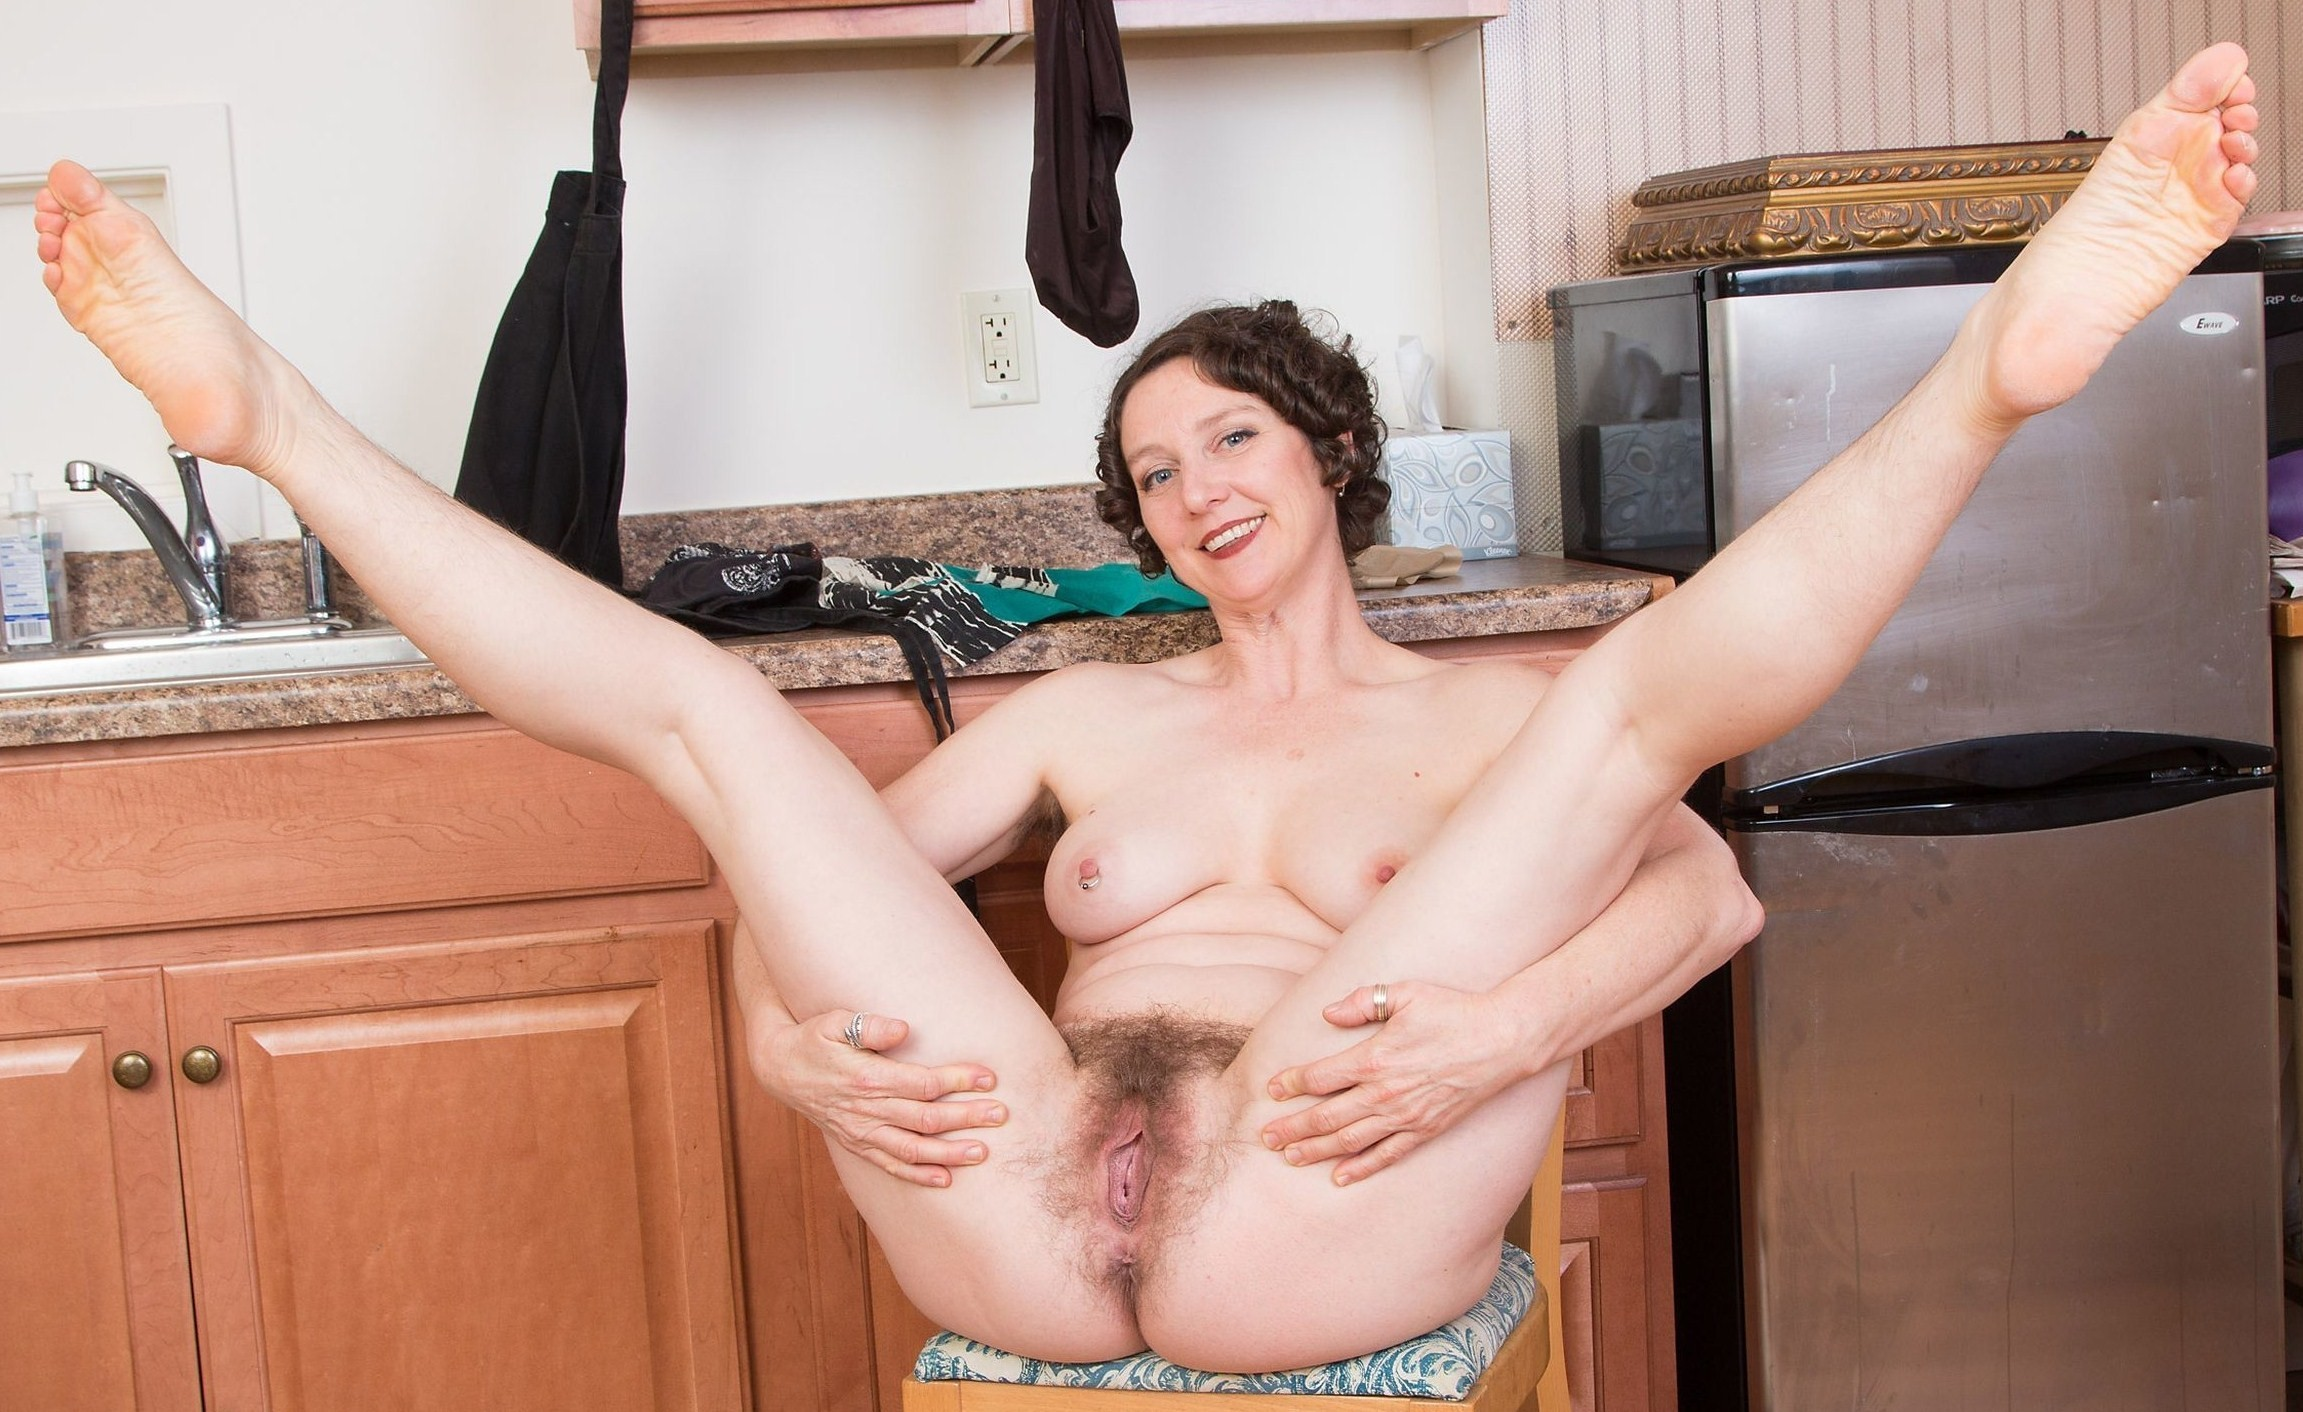 Teen hairy pussy older housewife torments her hairy pussy with kitchen utensils